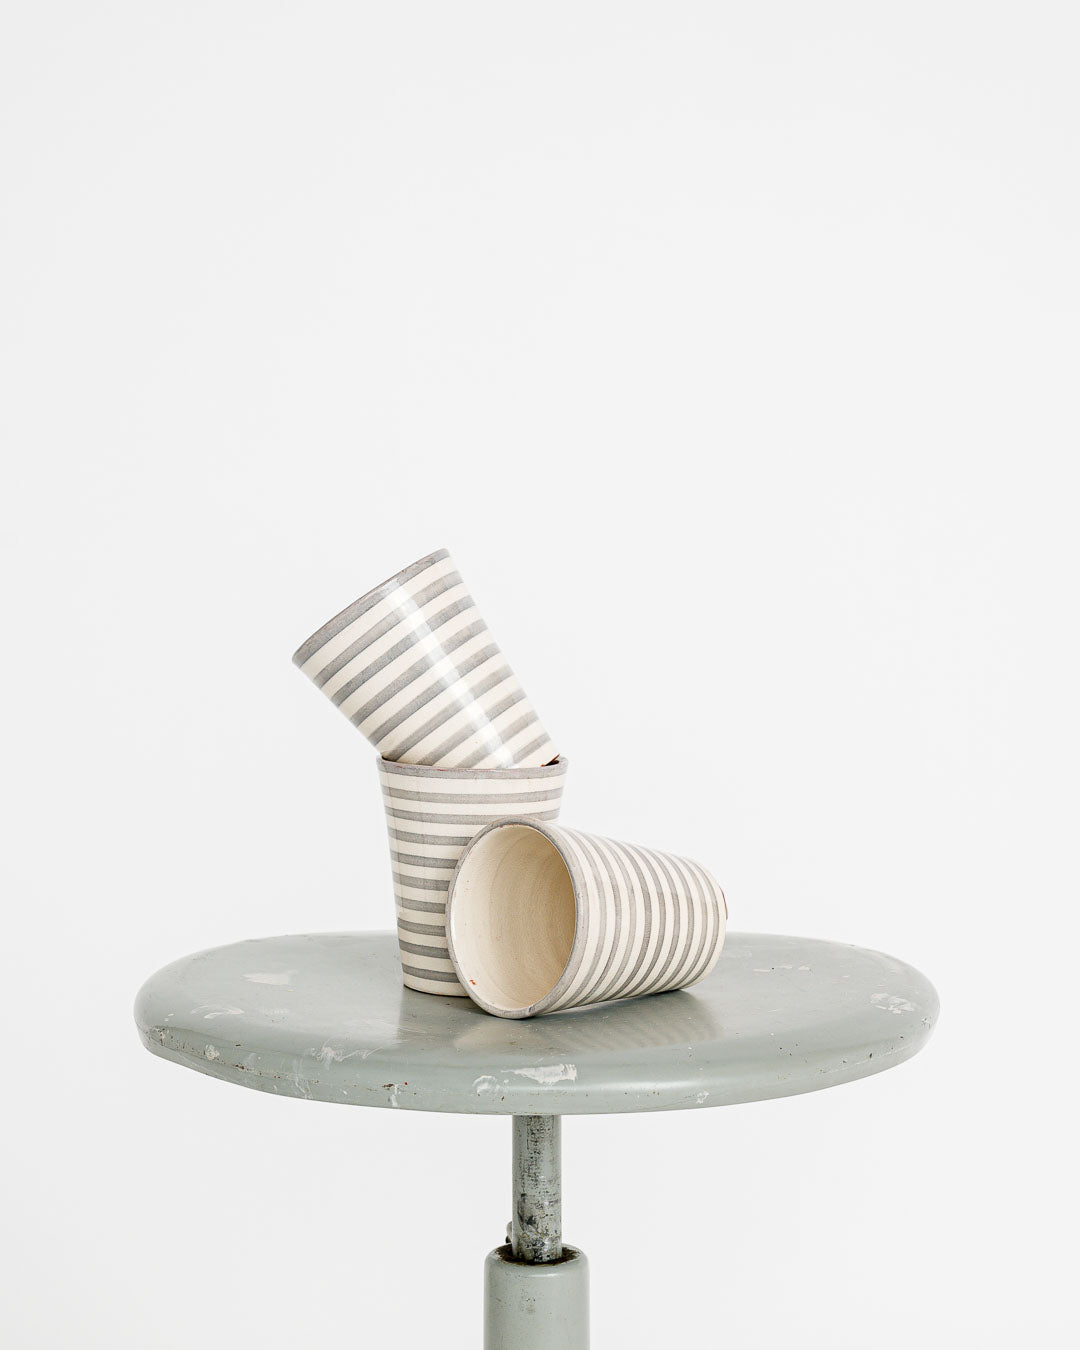 tine k home // Mug striped grey